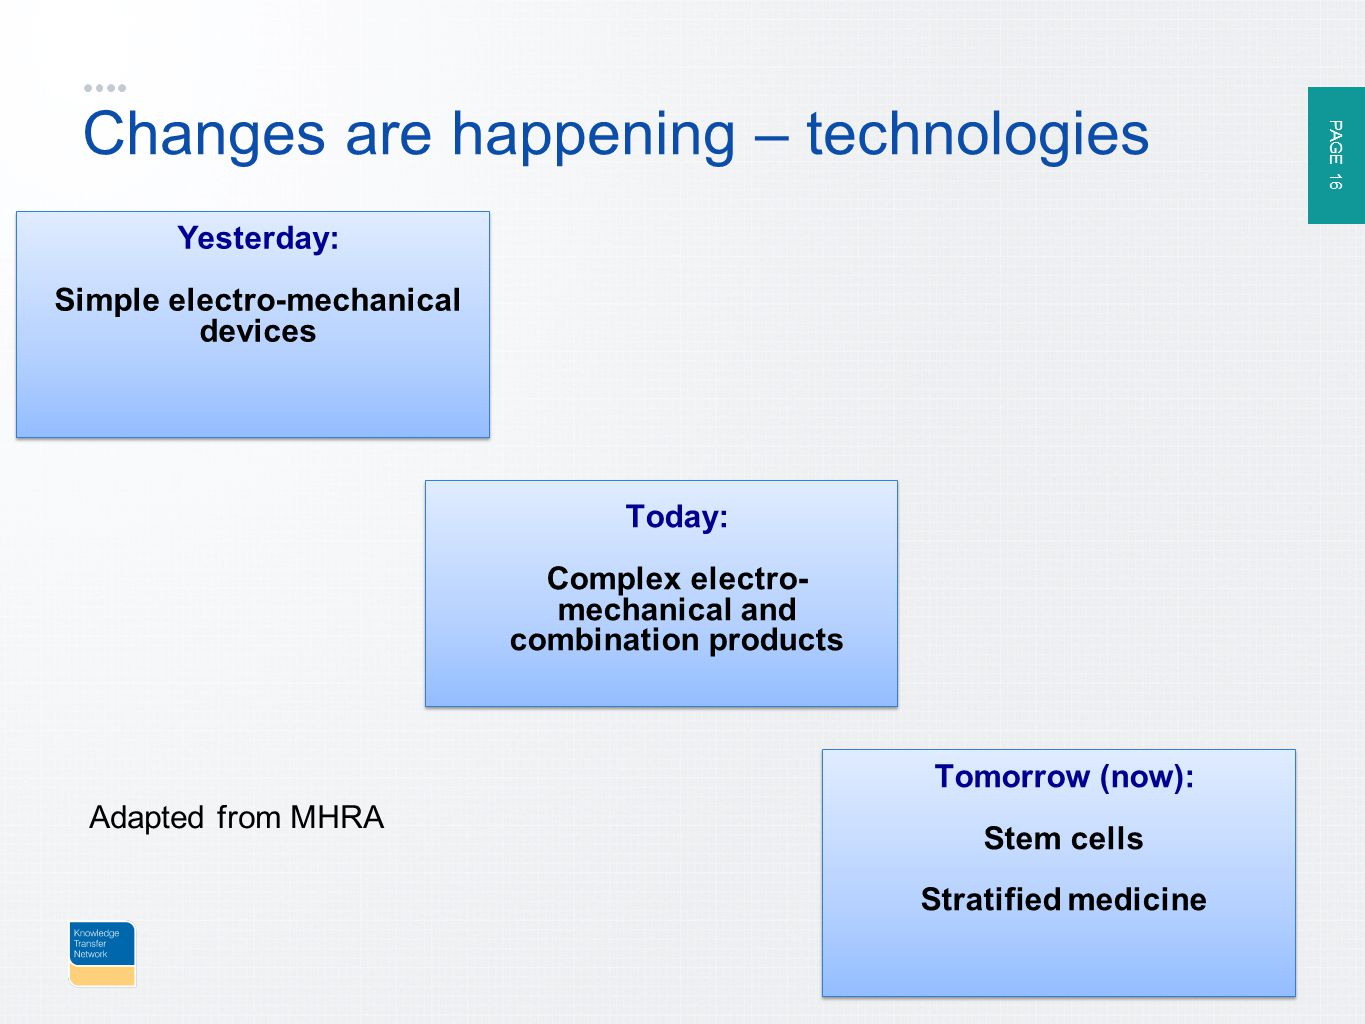 PAGE 16 ktn-uk.org Changes are happening – technologies Yesterday: Simple electro-mechanical devices Today: Complex electro- mechanical and combination products Tomorrow (now): Stem cells Stratified medicine Adapted from MHRA